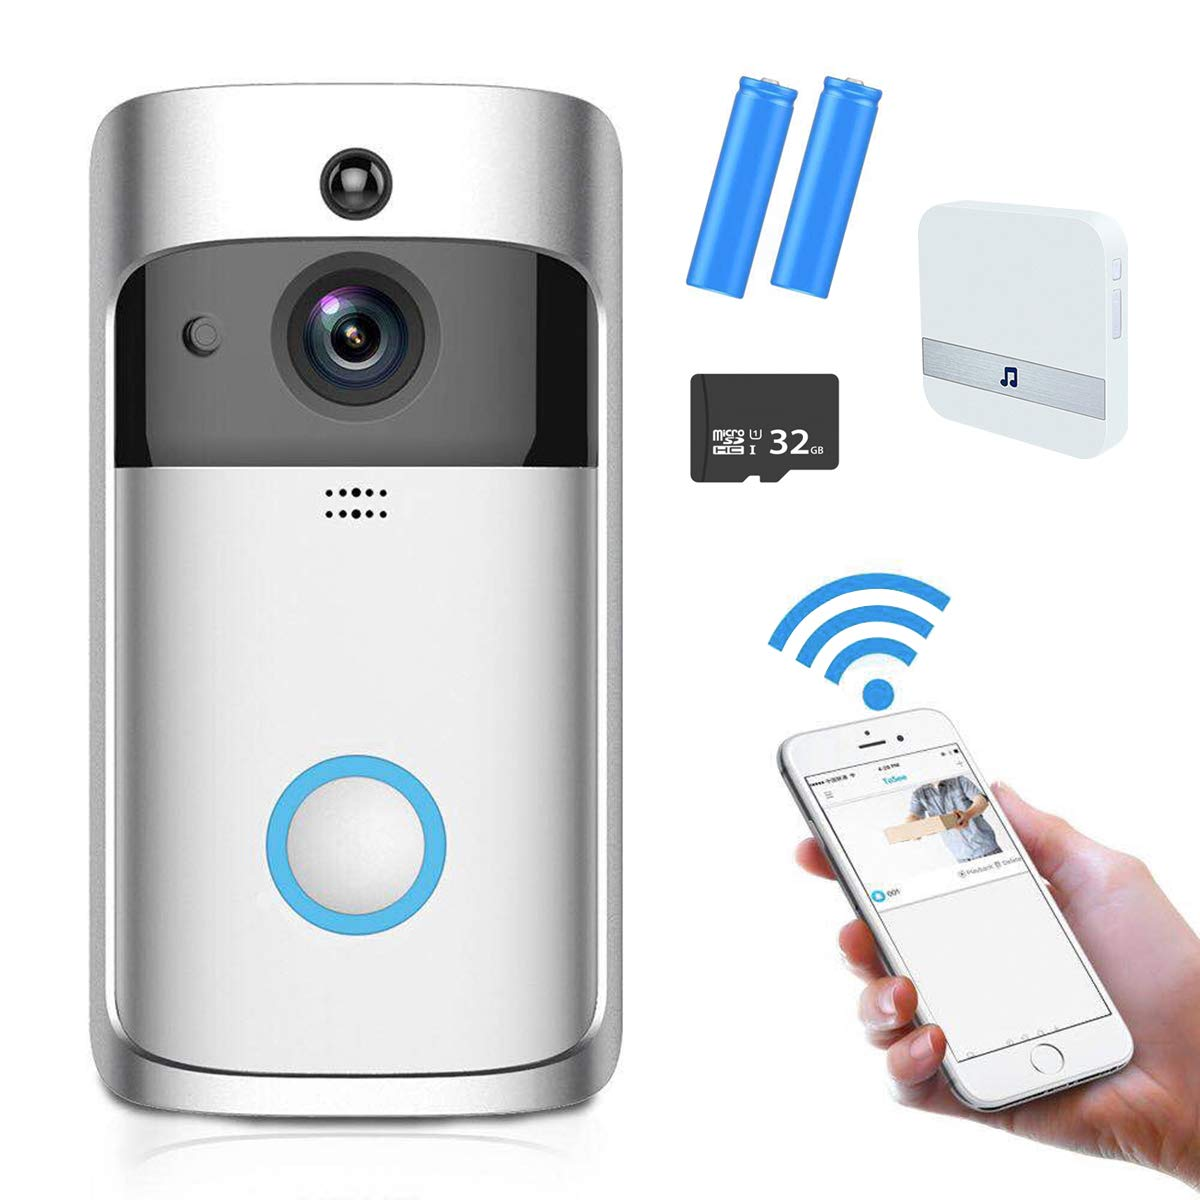 Wifi Video Doorbell, AOGE Wireless Smart Doorbell, Home Security Camera with Chime, Built-in 32G TF Card, PIR Motion Detection, Night Vision, Two Way Audio and App Control for IOS and Android